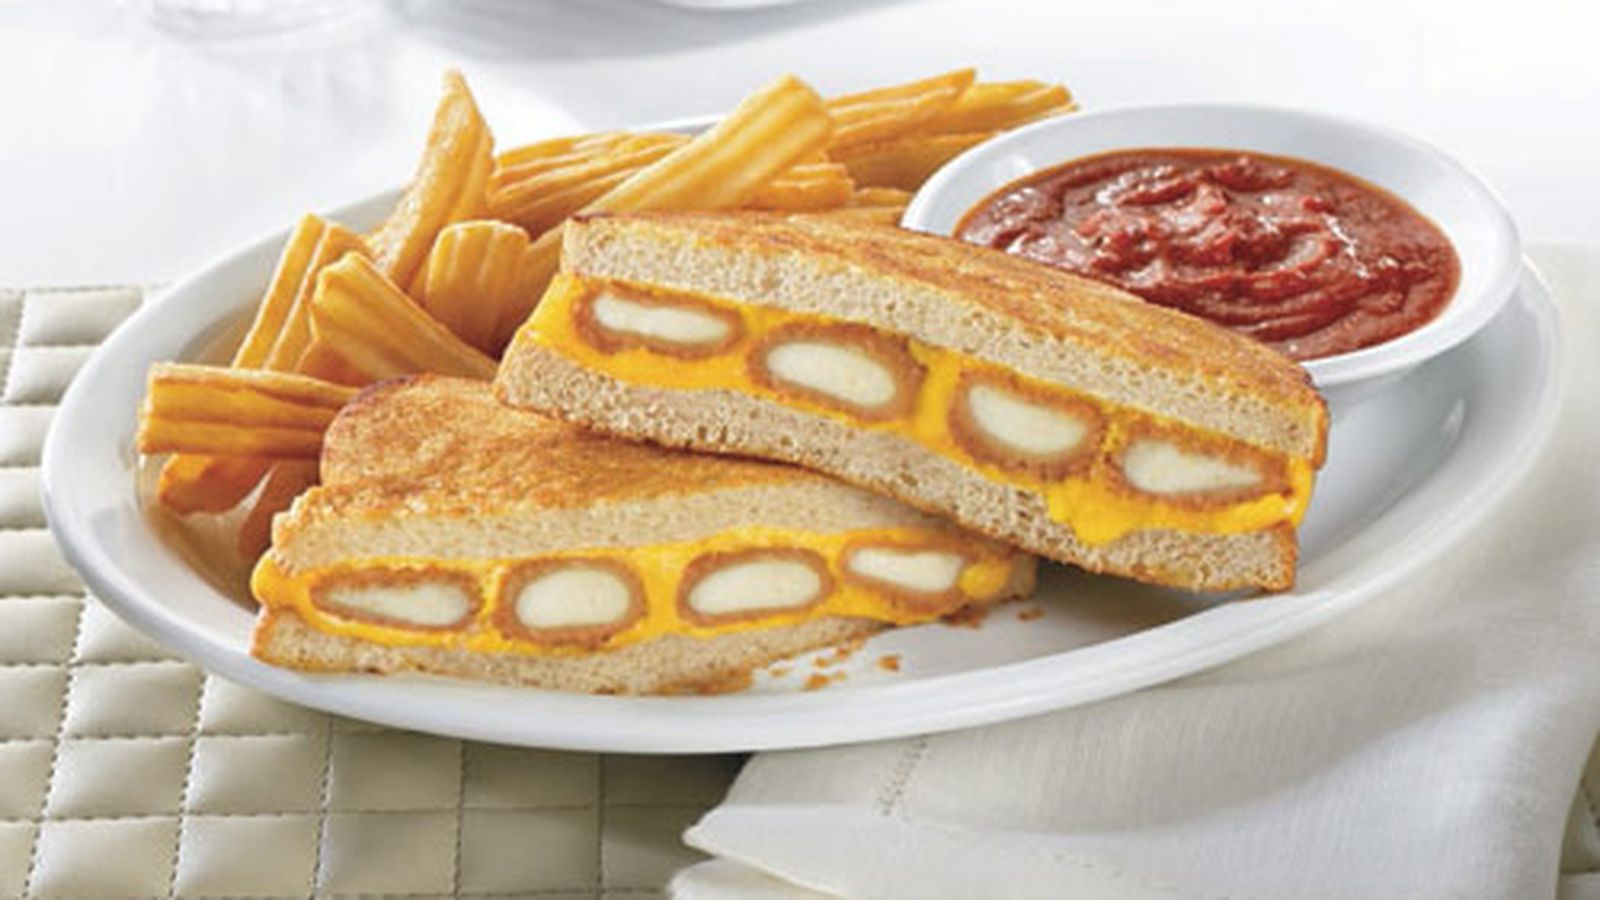 Baked Fish Sandwich Fast Food